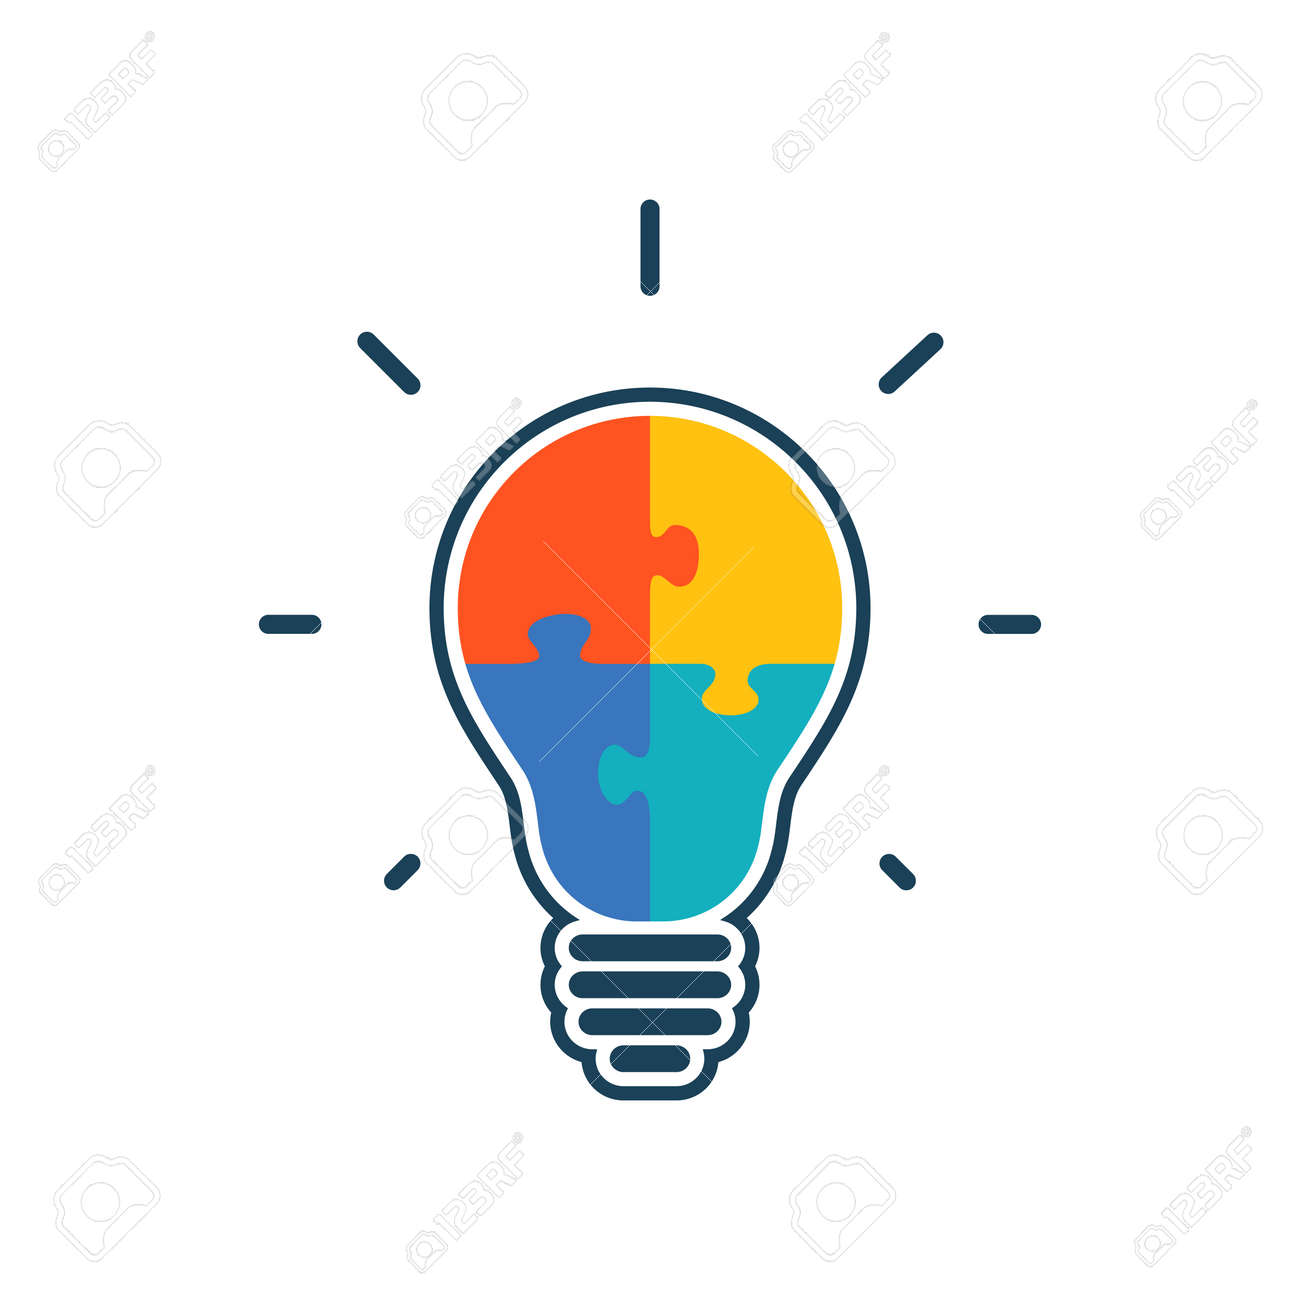 Simple flat light bulb icon with jigsaw puzzle pieces inside. Vector illustration. - 52220805